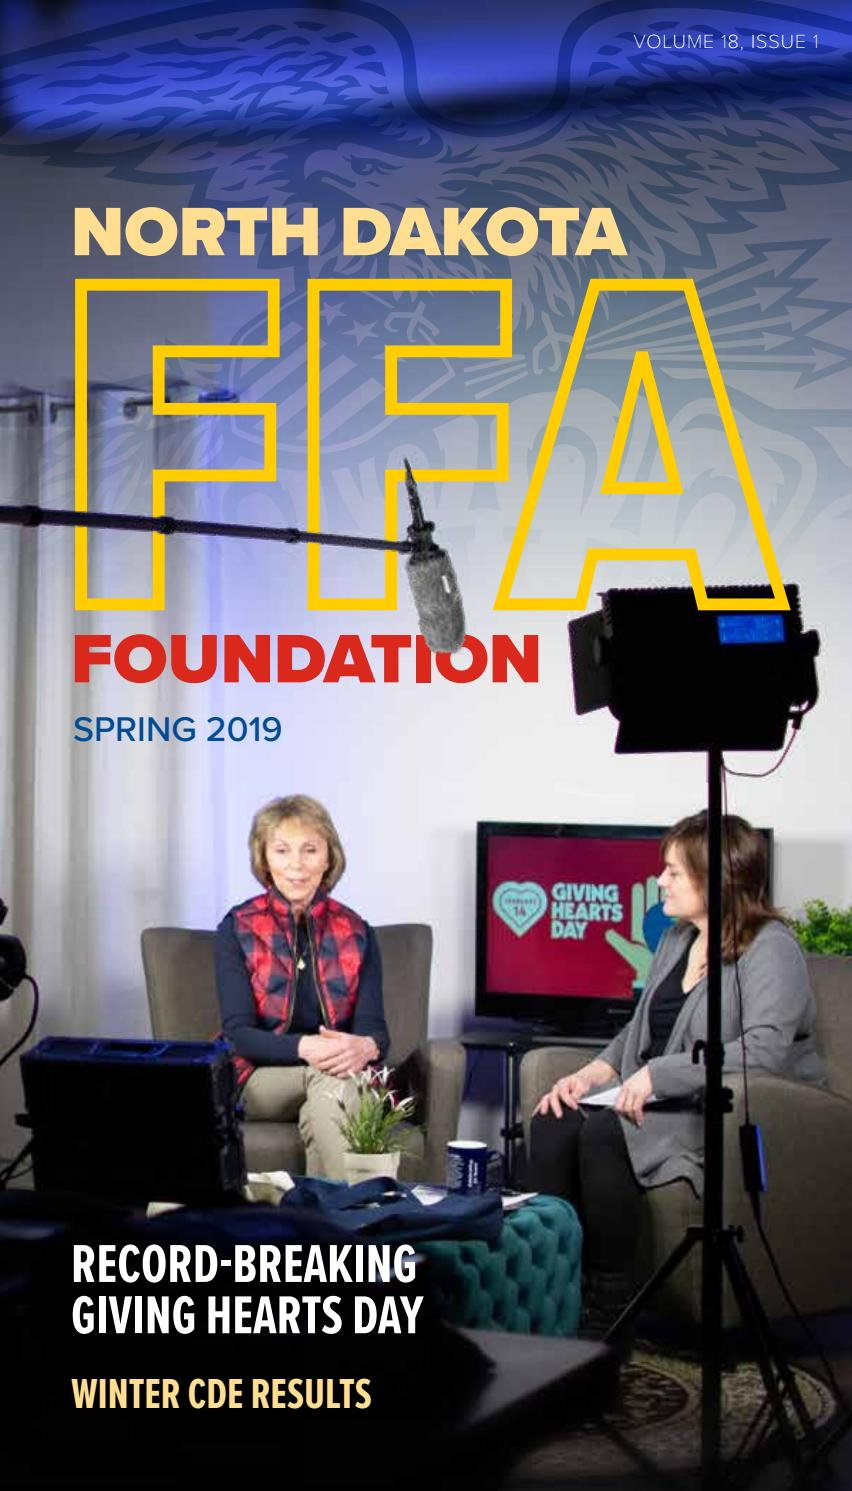 nd ffa foundation spring 2019 newsletter by nd ffa issuu nd ffa foundation spring 2019